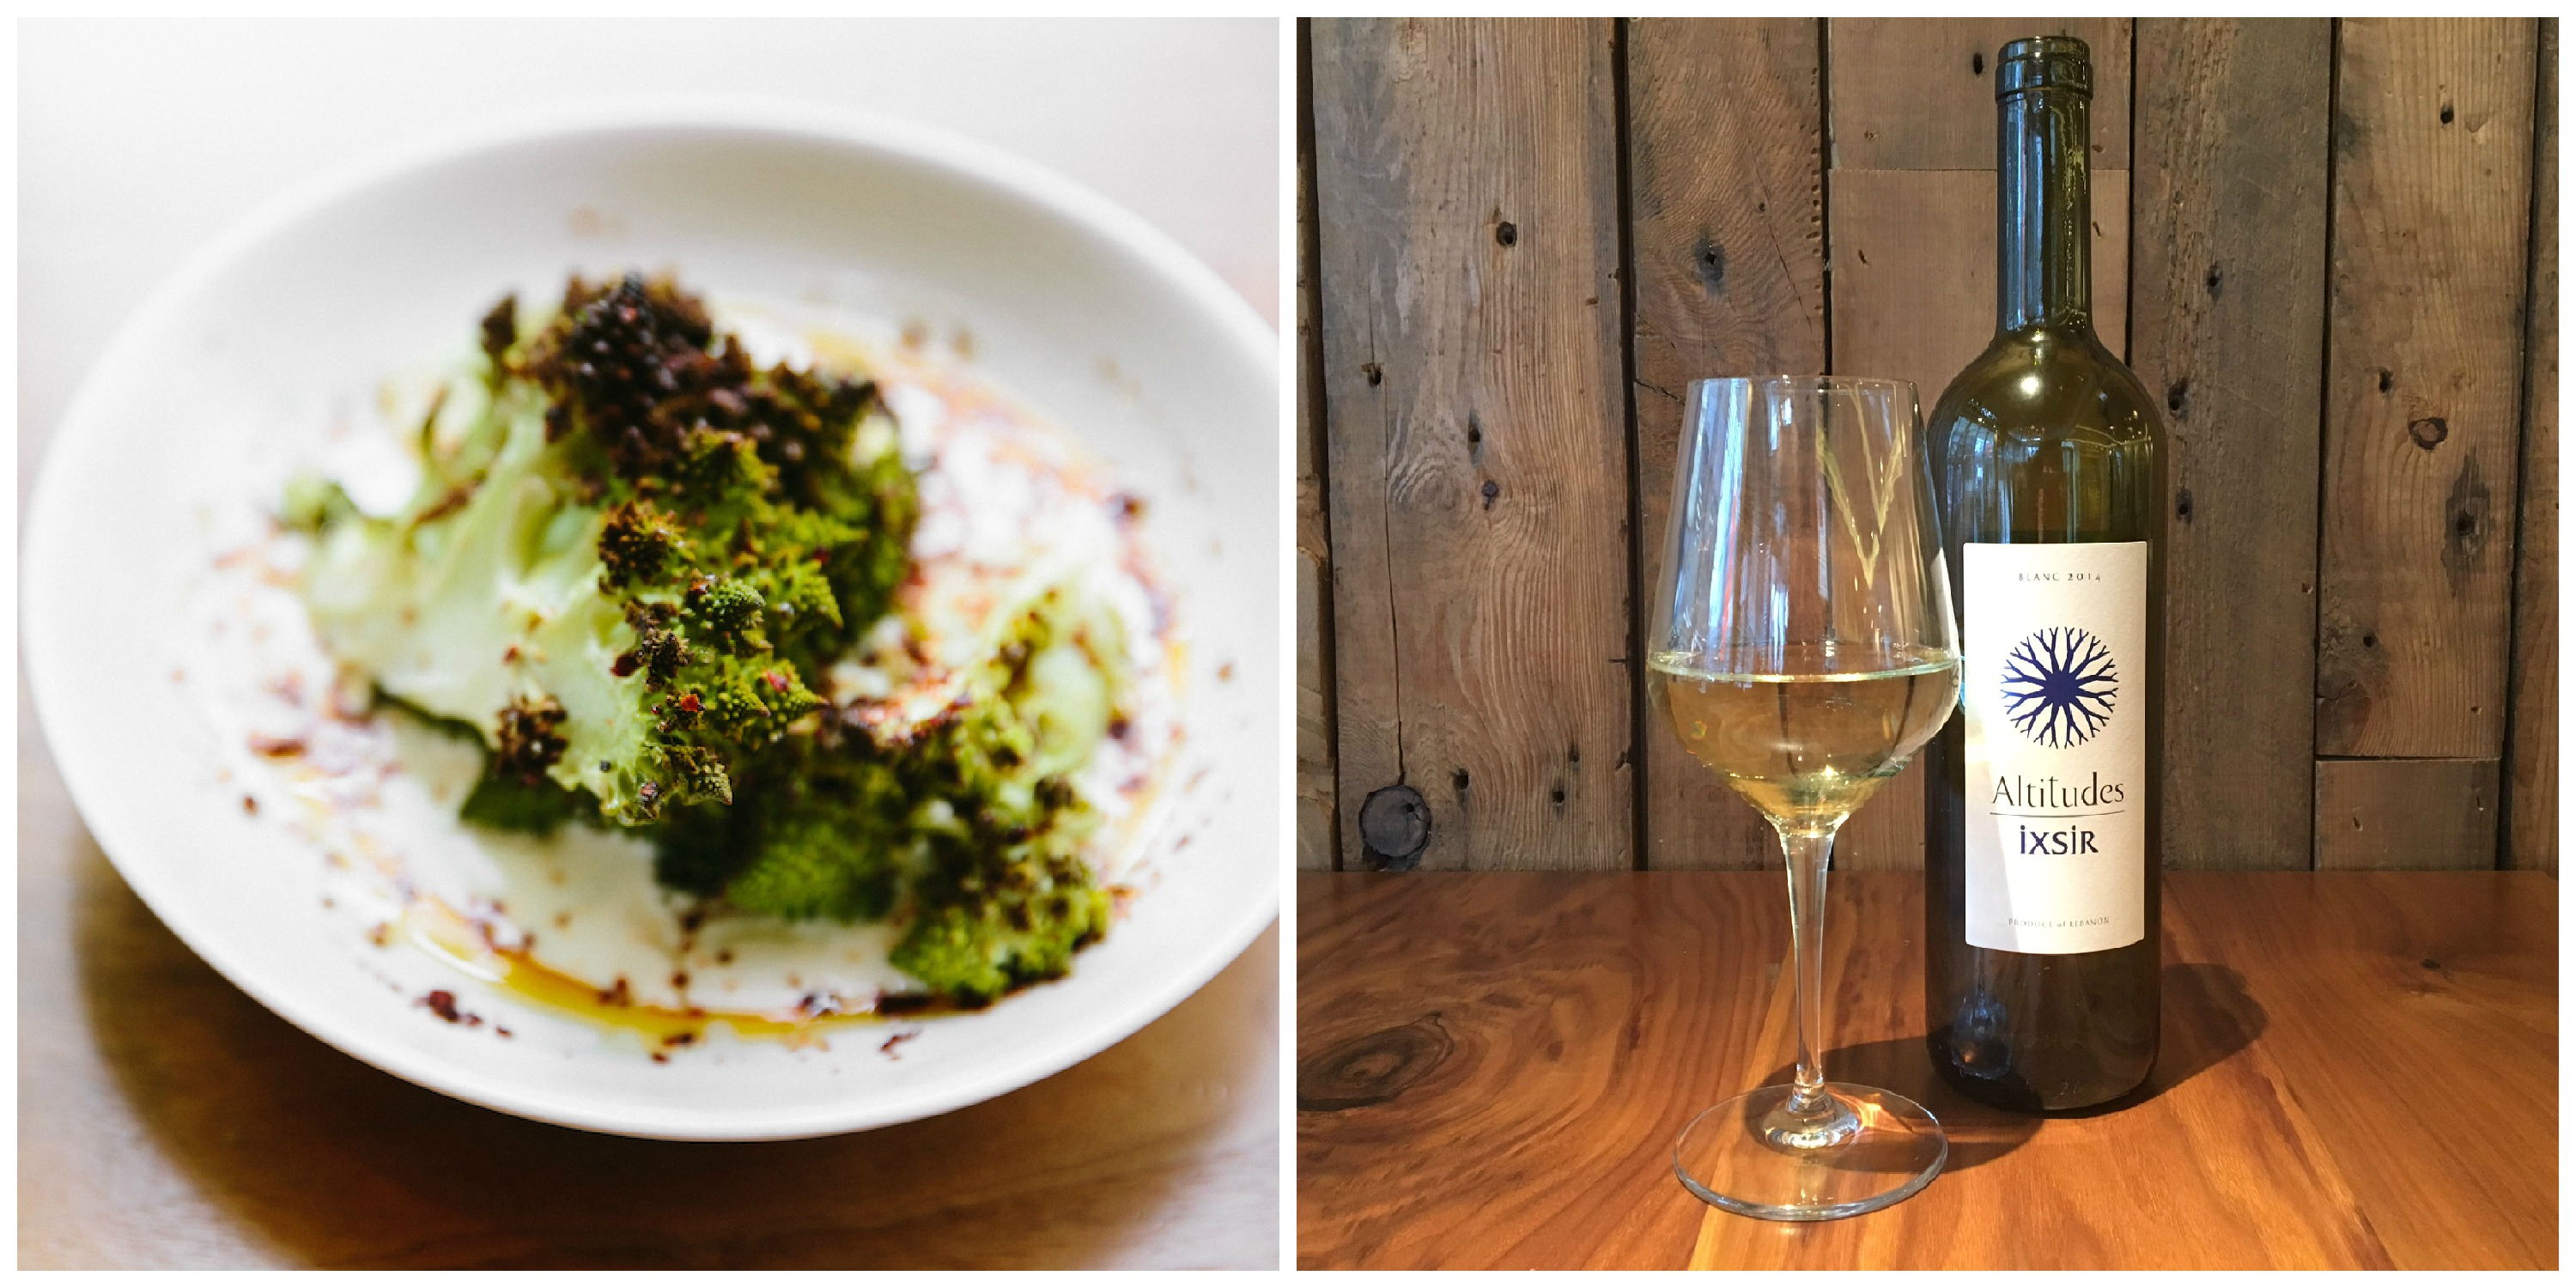 charred broccoli next to glass of white wine